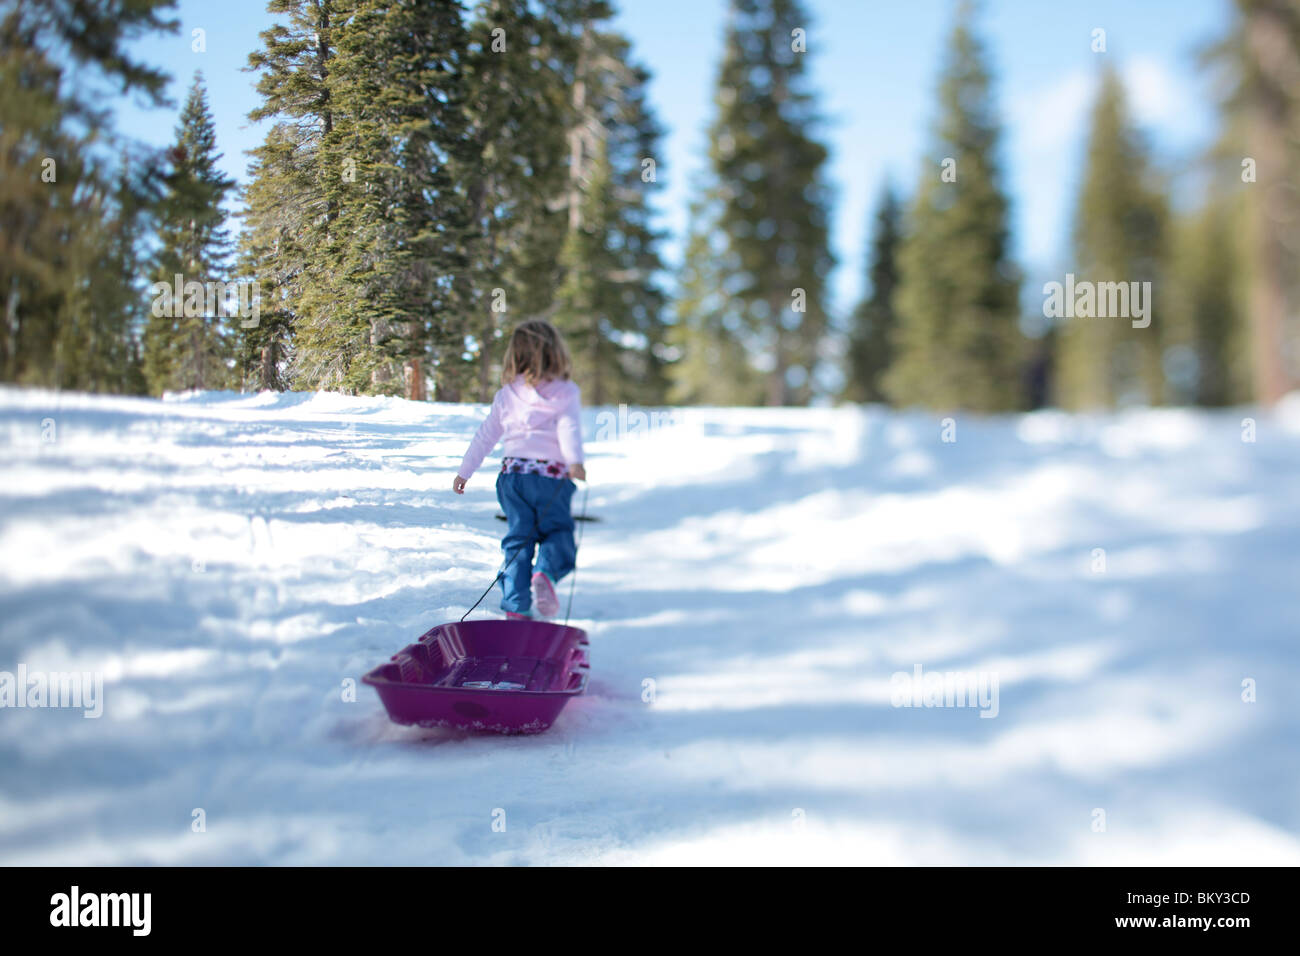 A three year-old girl with a purple sled in the snowy wilderness of Lake Tahoe, Calfornia. - Stock Image